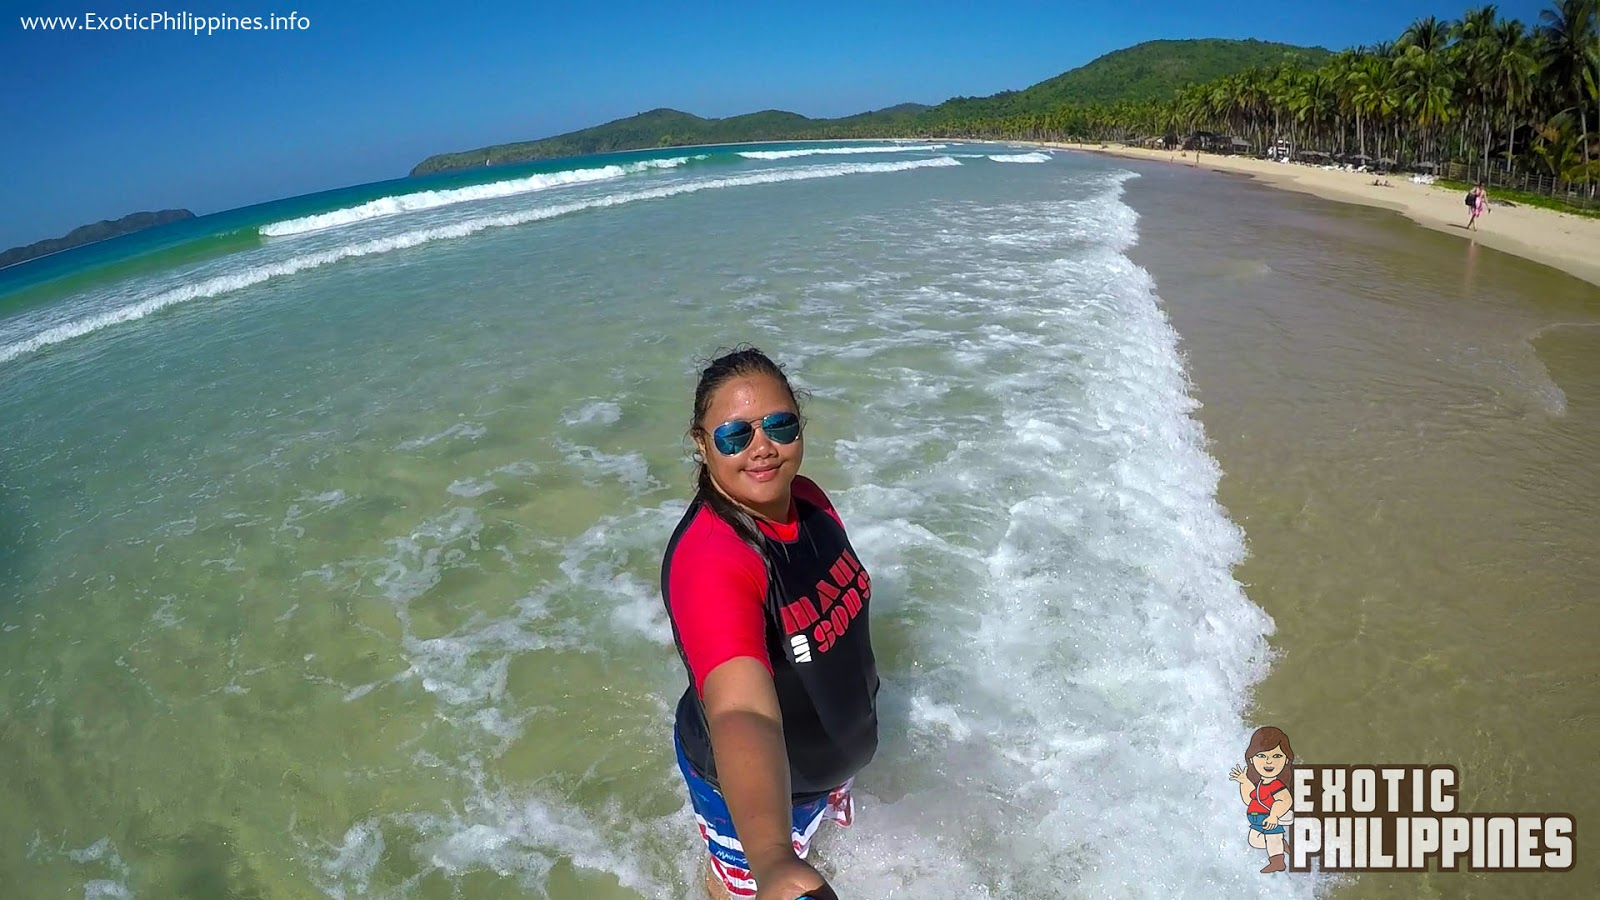 Nacpan Beach and Calitang Beach El Nido Twin Beach Palawan Exotic Philippines Travel Blogger Blog Vlogger